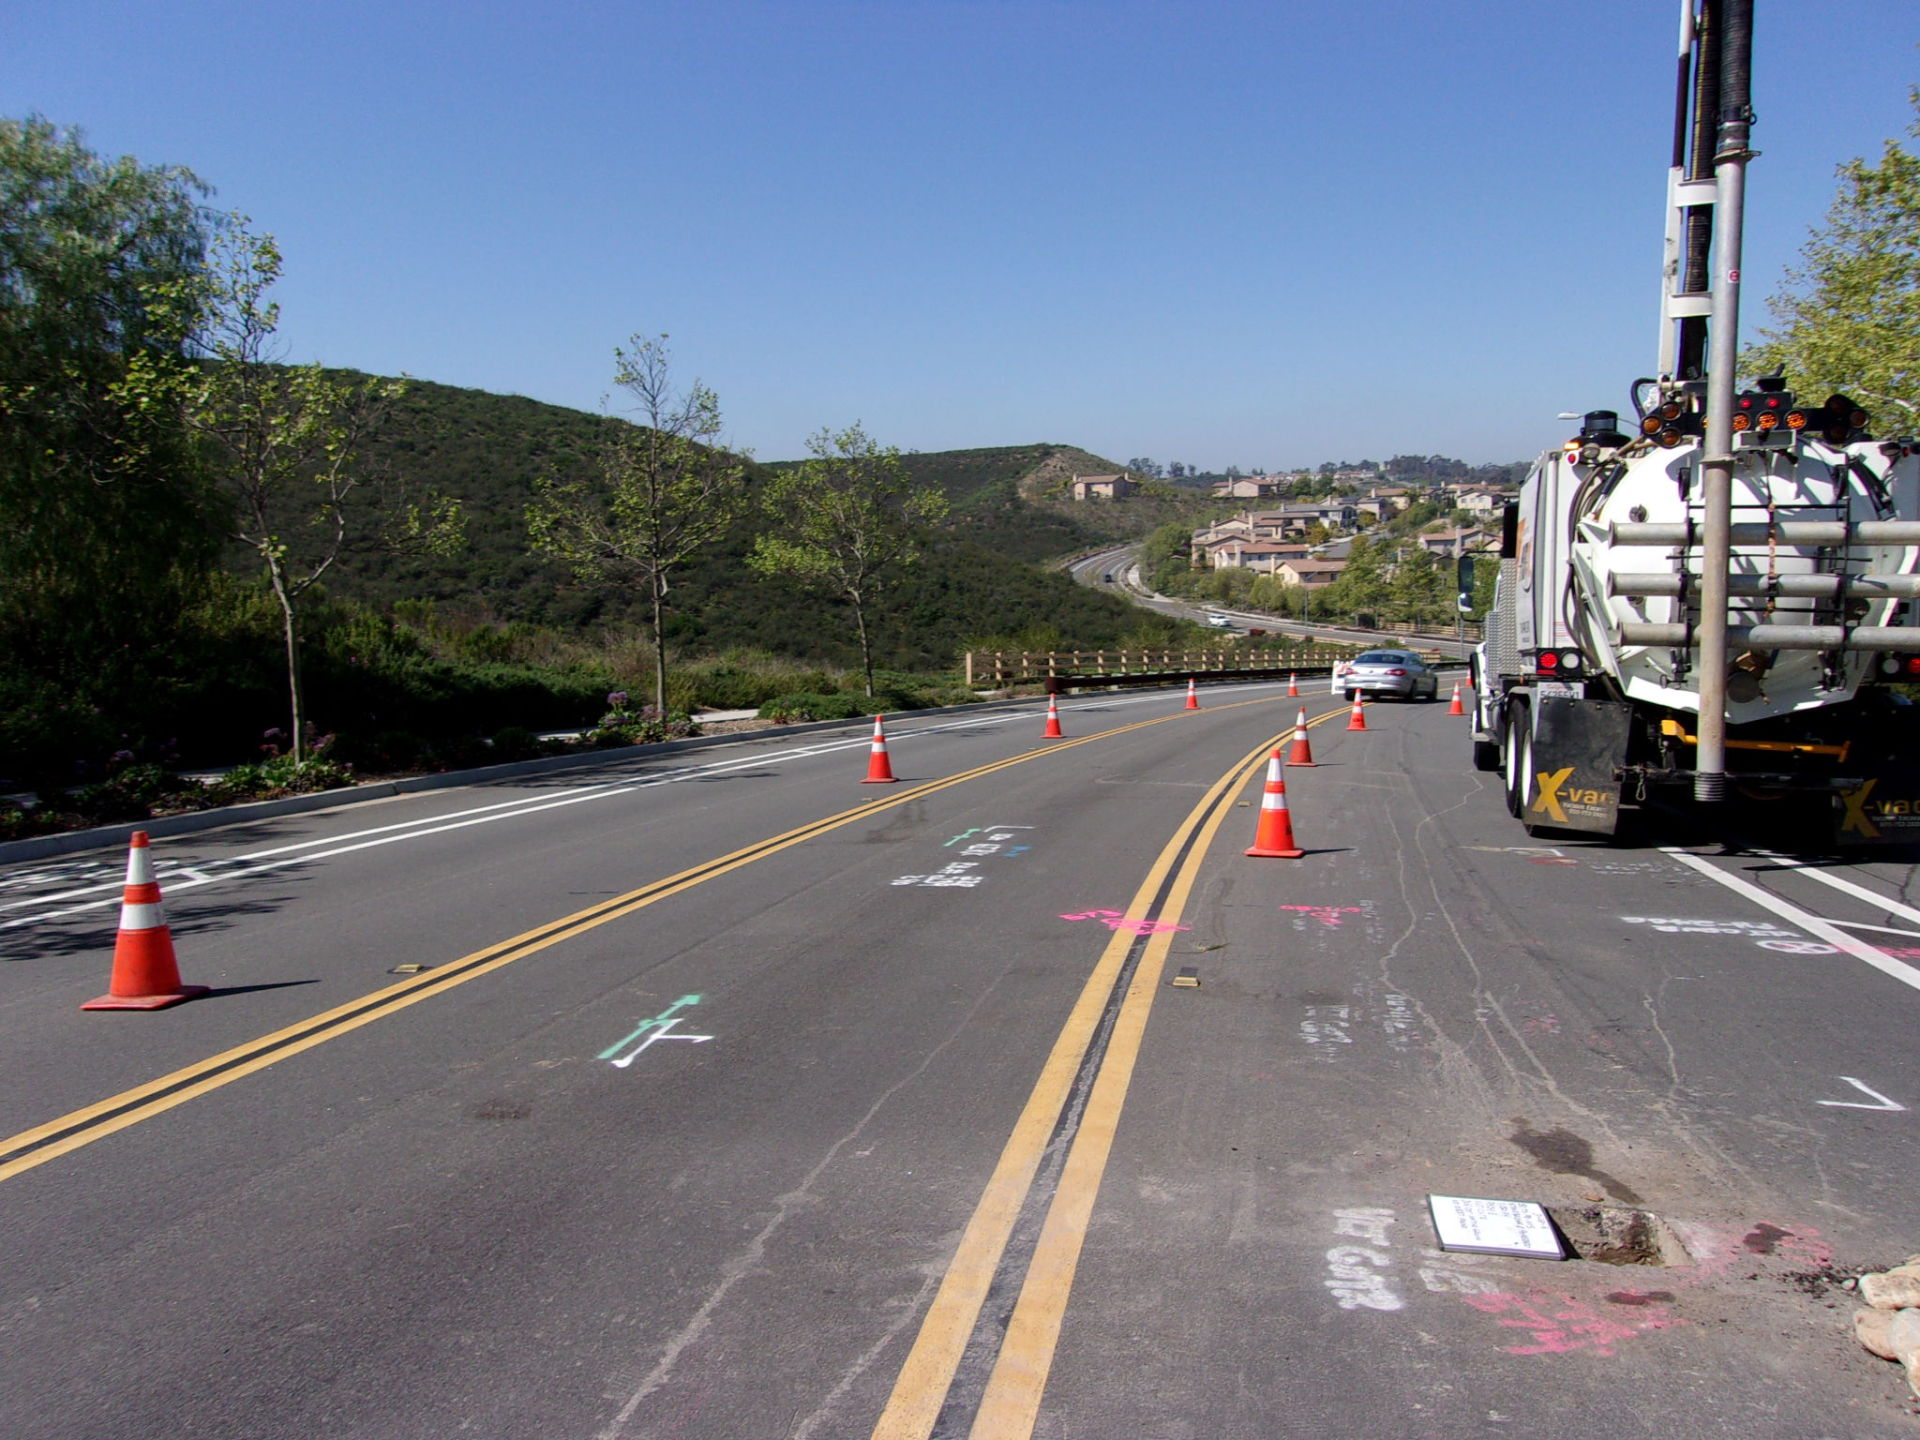 SX-PQ, electrical undergrounding, potholes, traffic control, nigh work, vacuum excavation